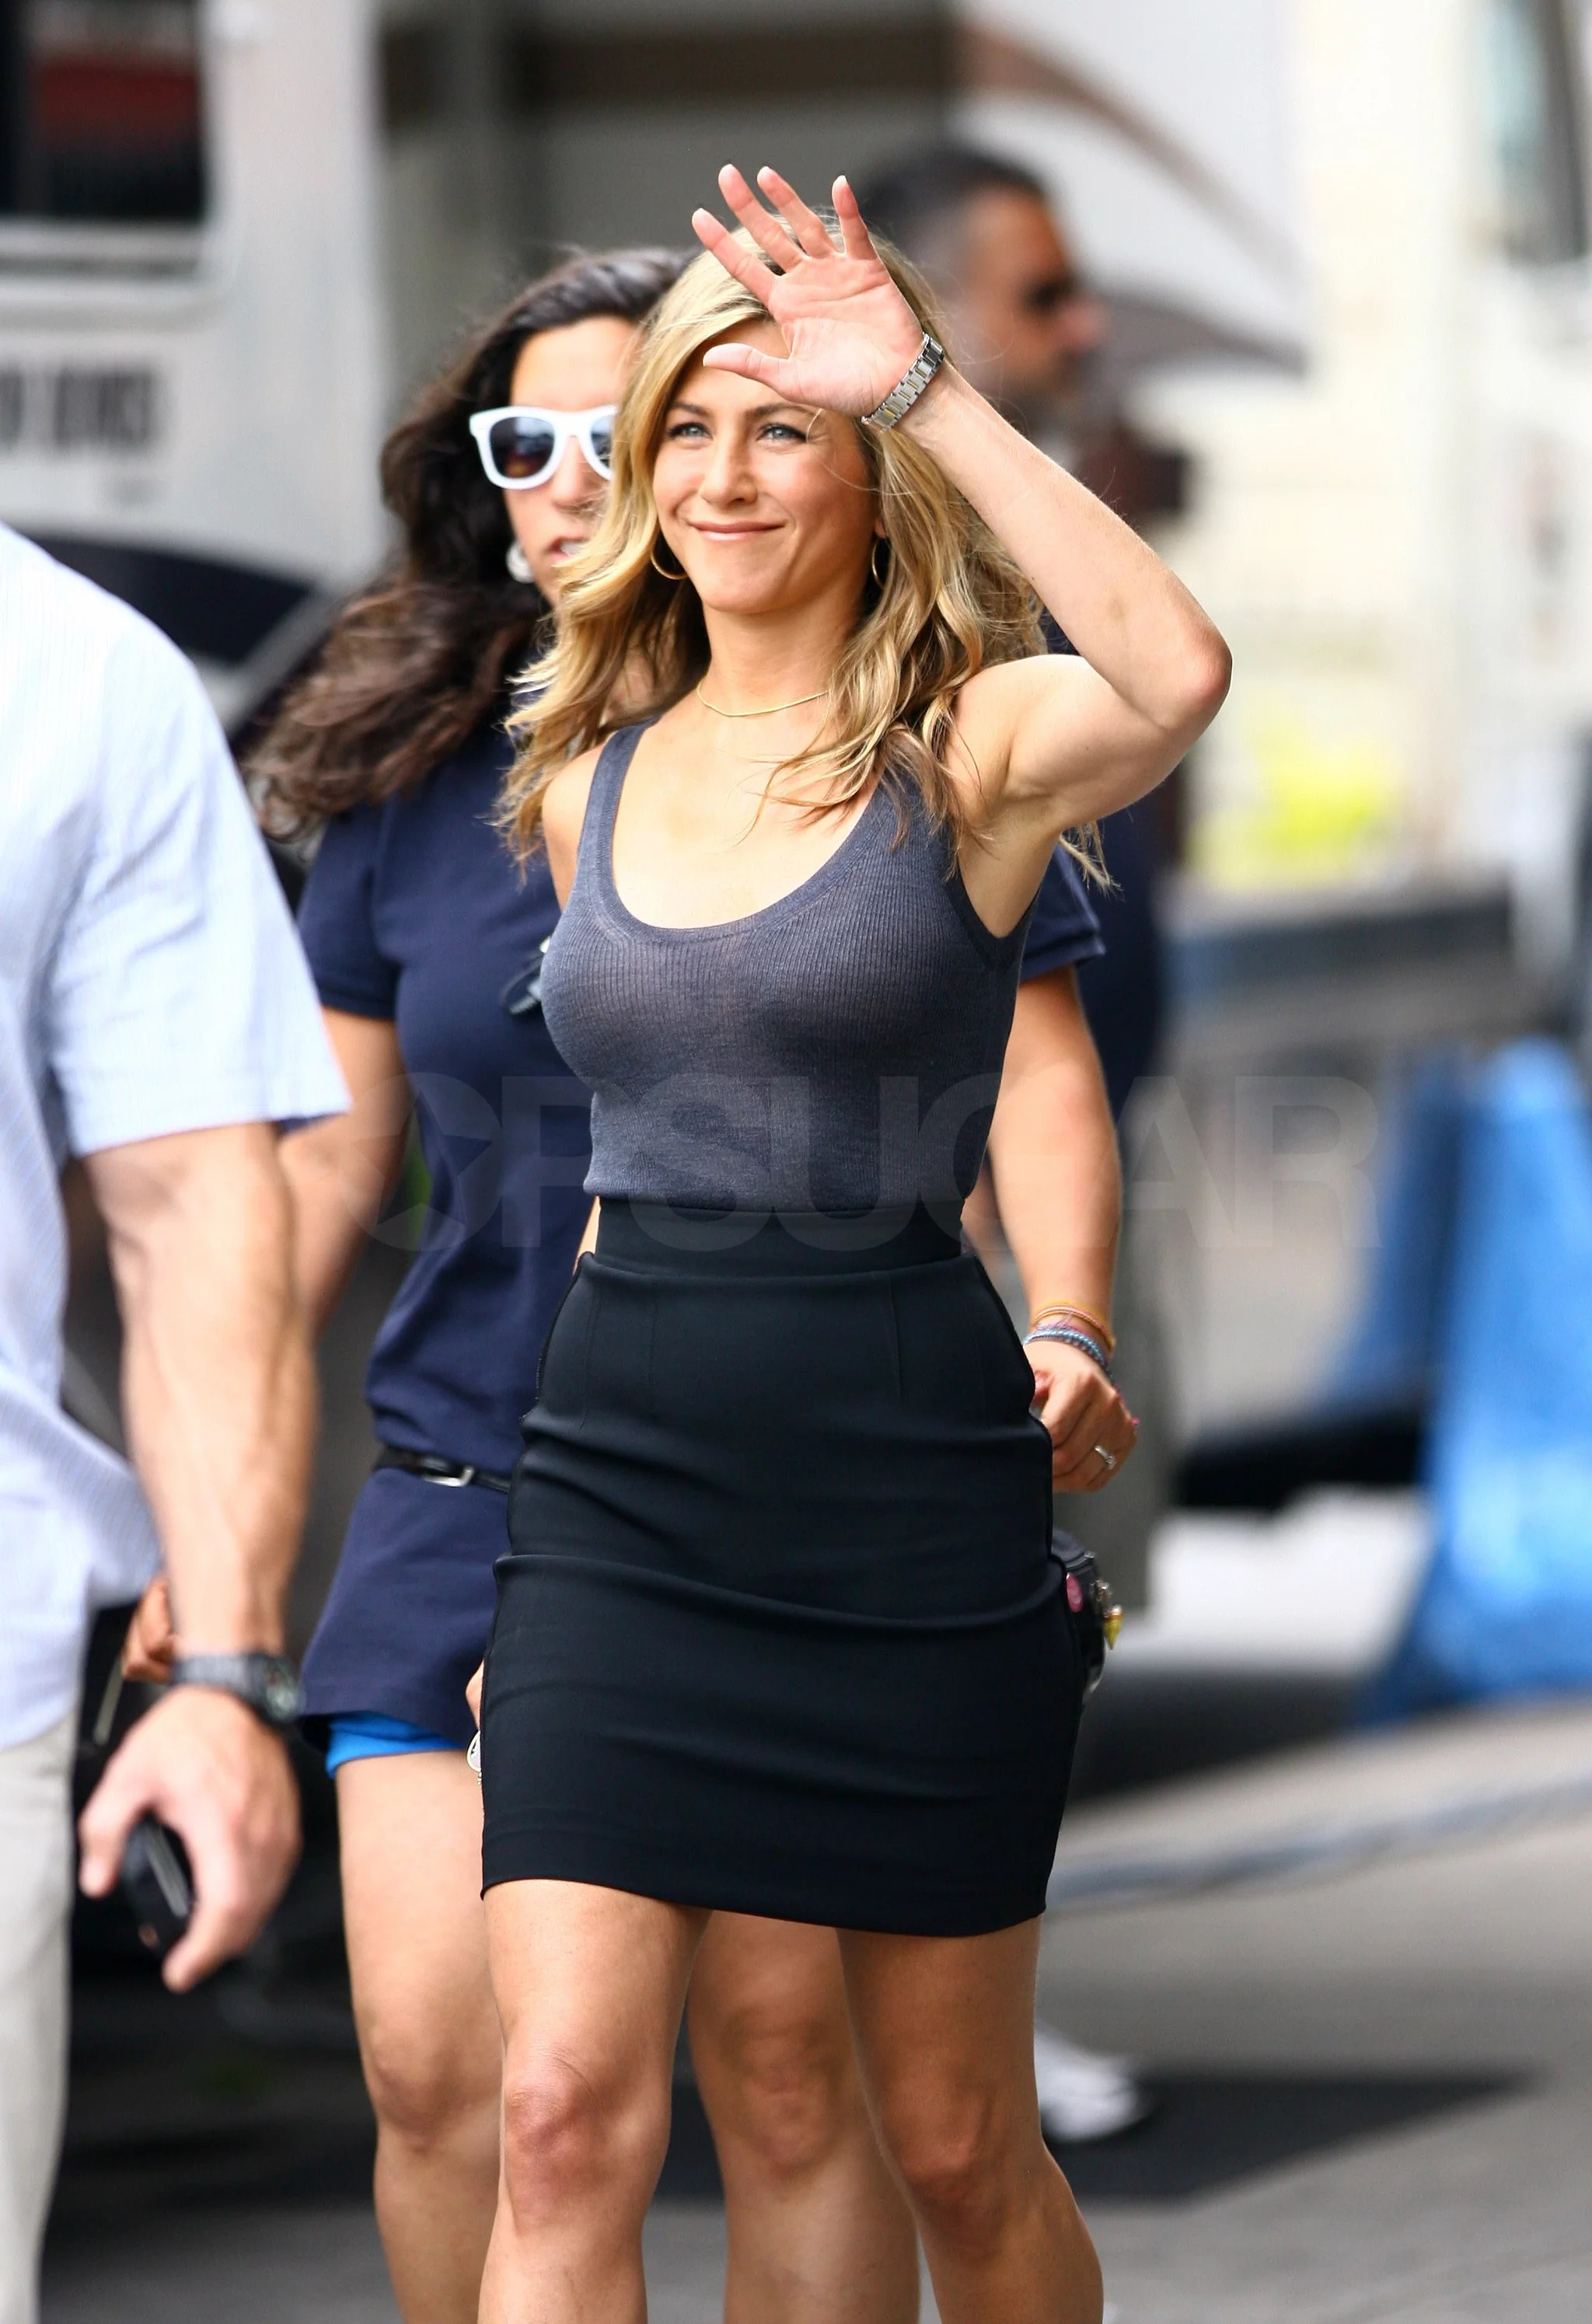 Photos Of Jennifer Aniston Filming The Bounty In NYC While